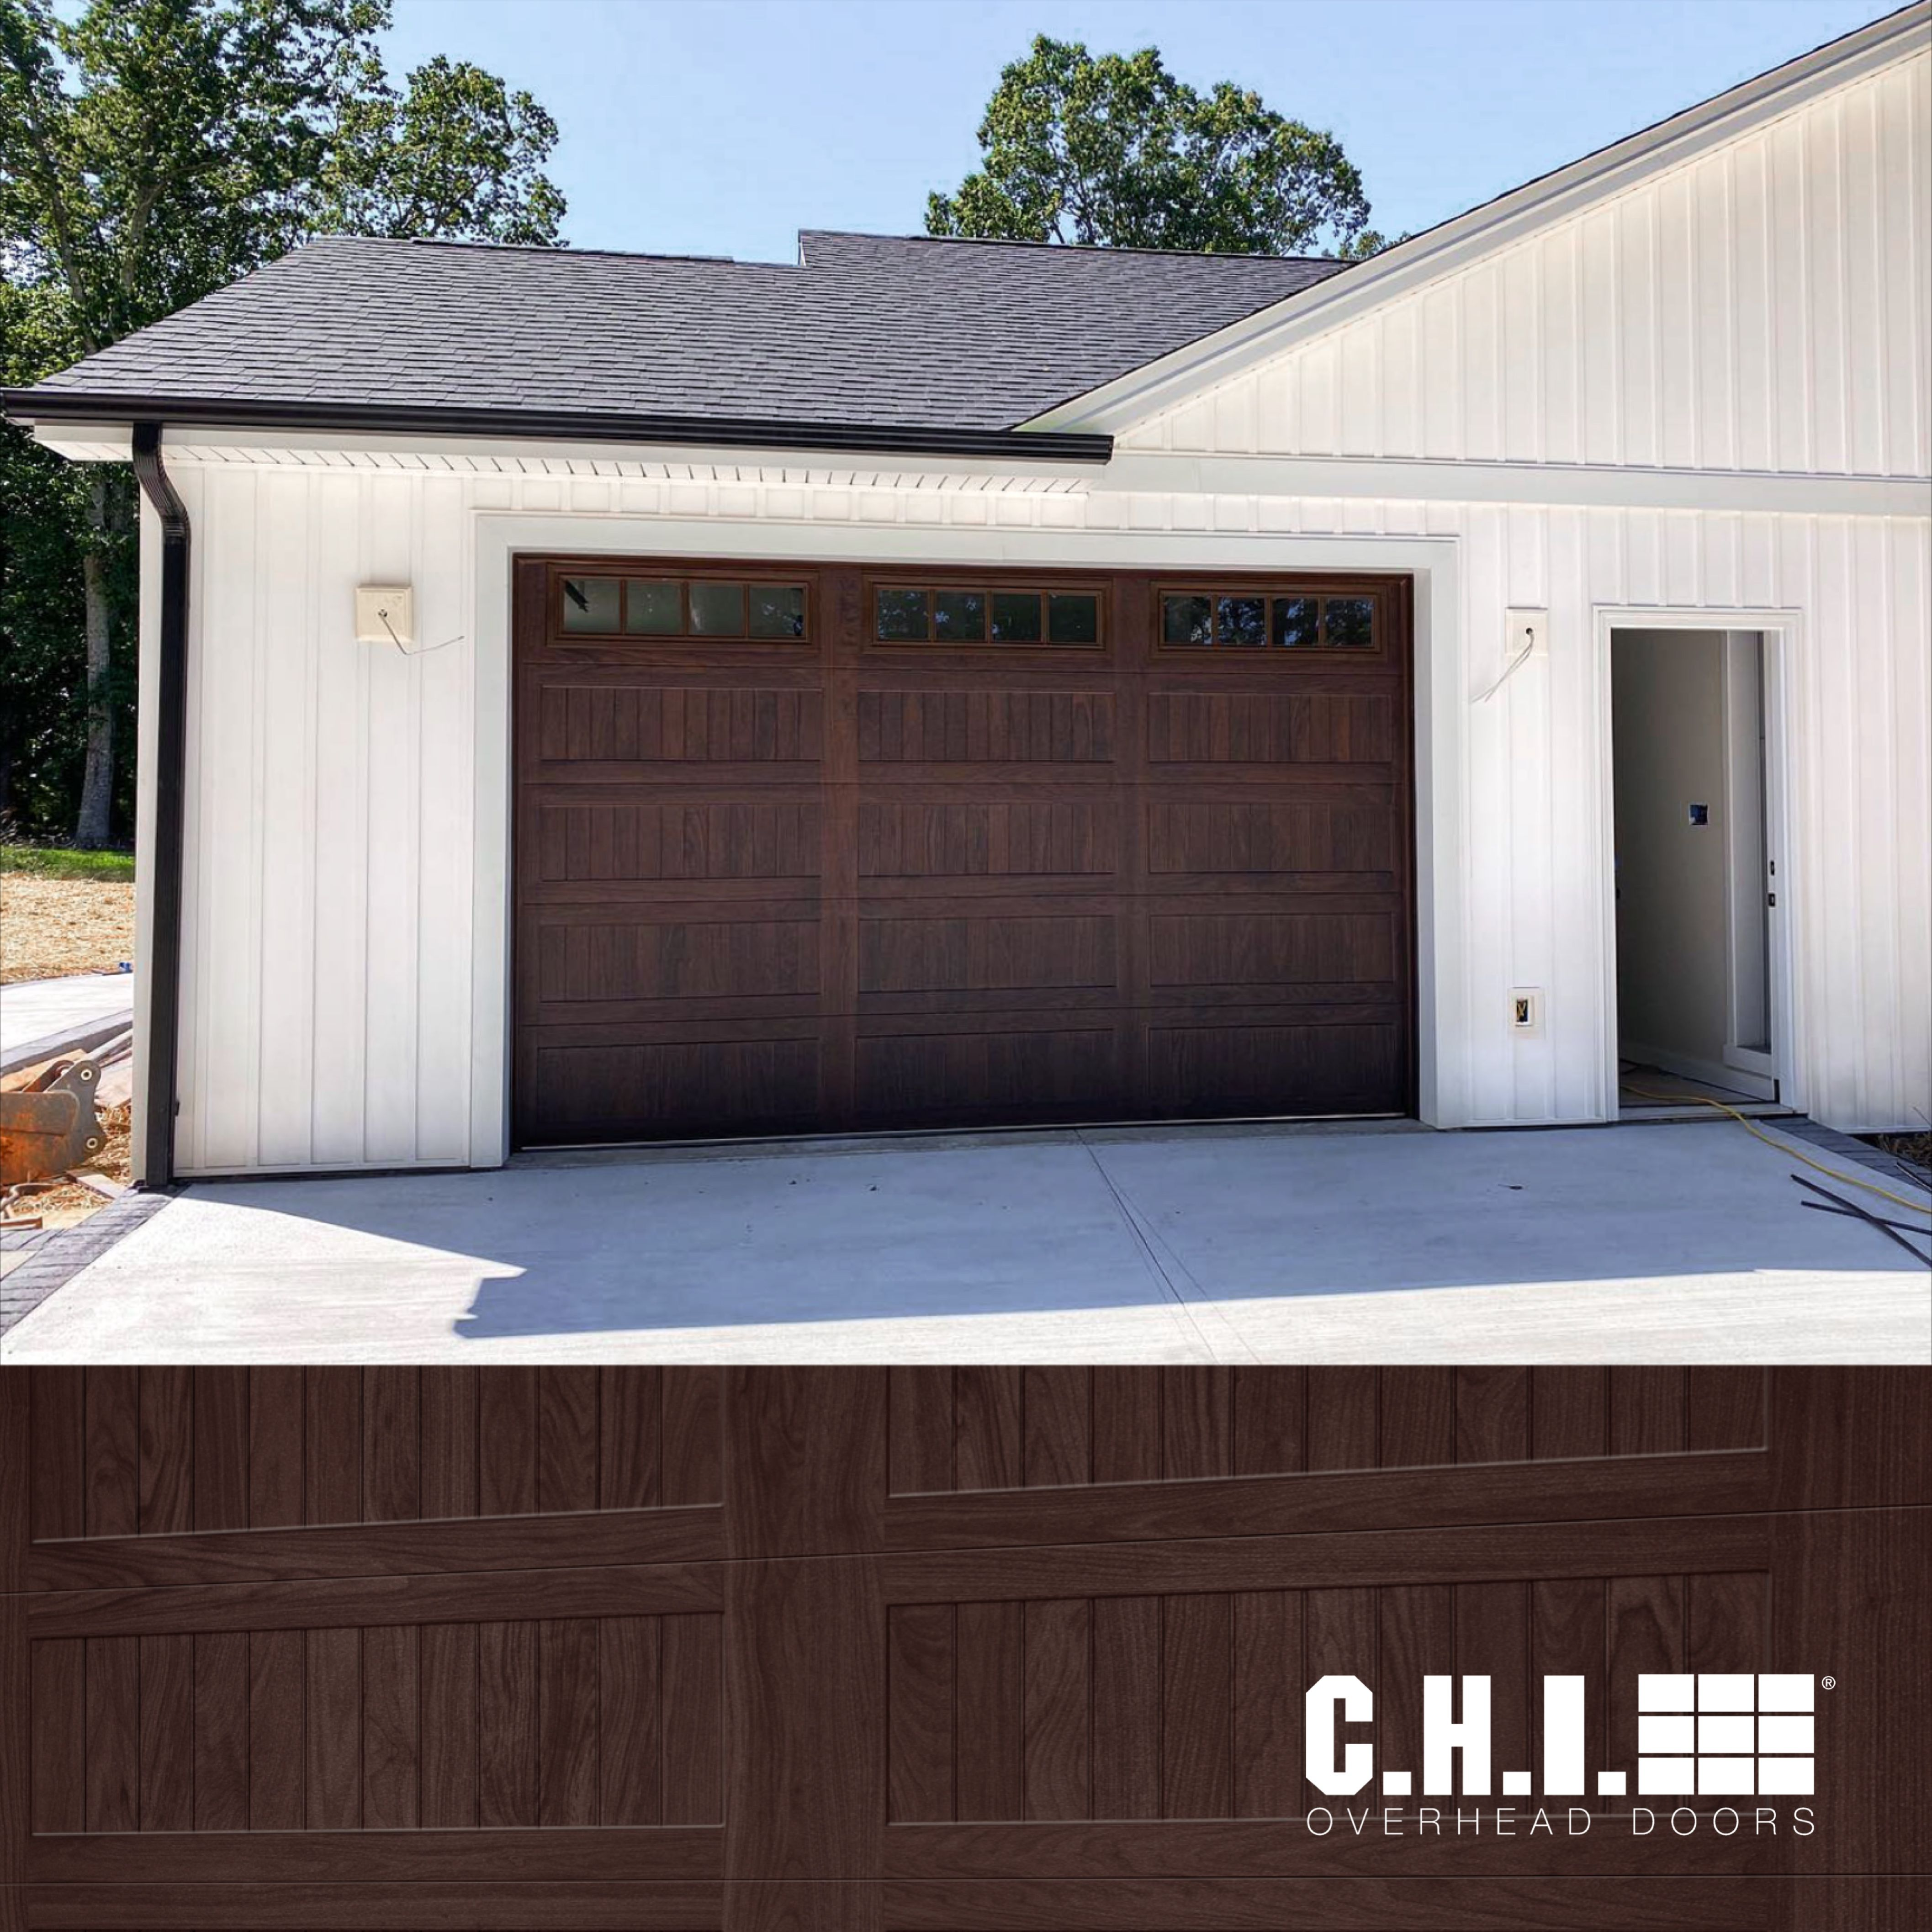 Faux Wood Stamped Carriage House Garage Door On White Exterior Walnut Carriage Style Garage Doors Garage Doors Garage Door Styles